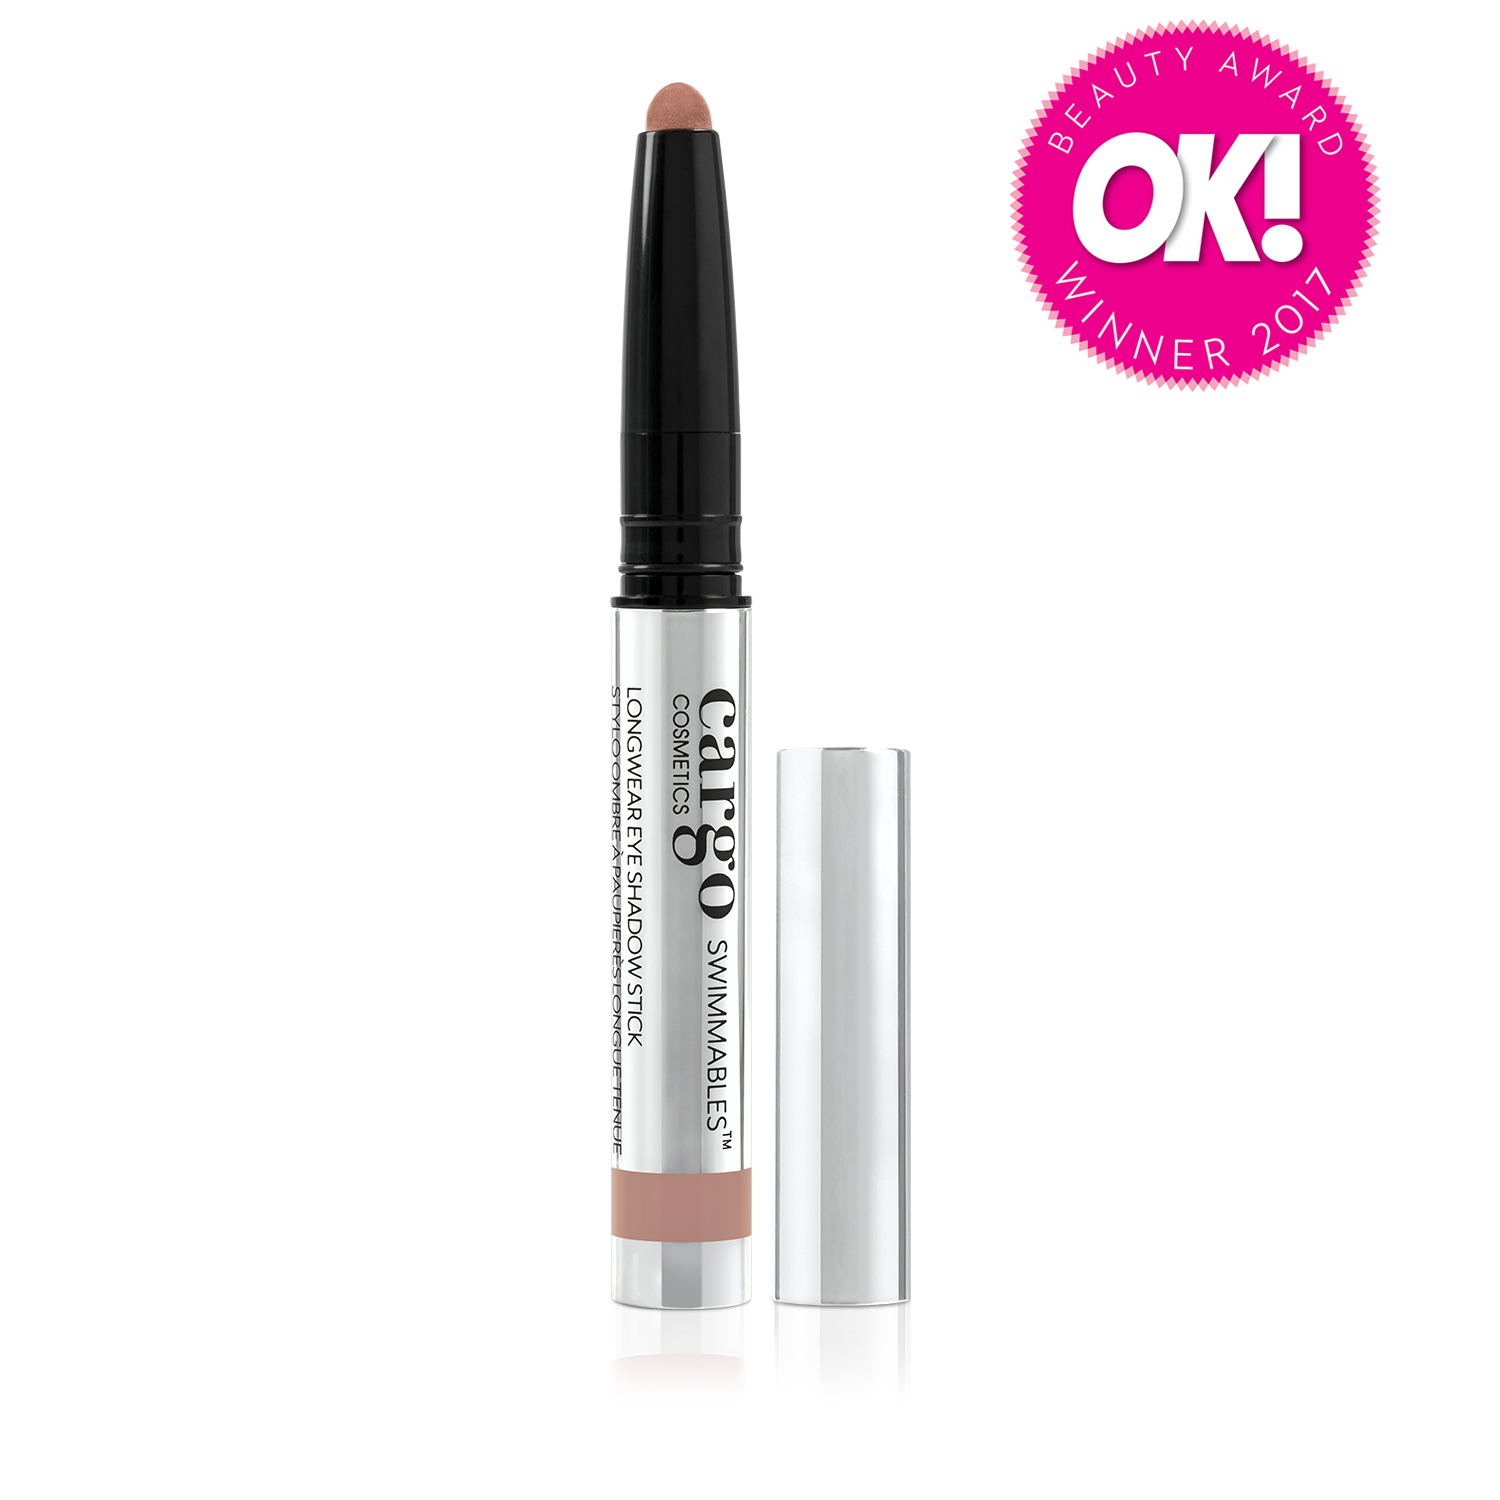 CARGO COSMETICS SWIMMABLES LONGWEAR EYE SHADOW STICKS WIN OK! BEAUTY AWARD